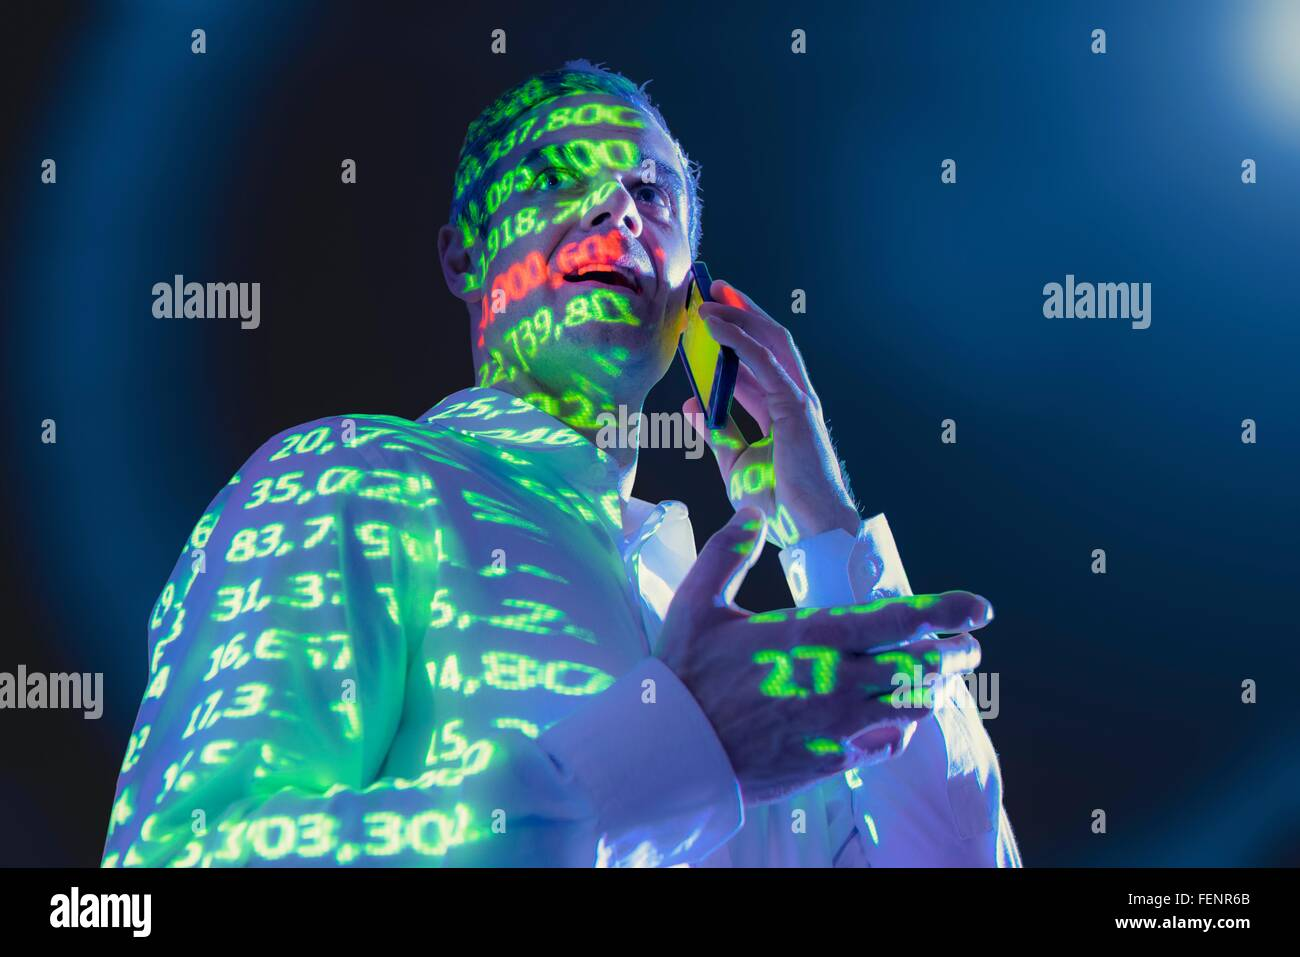 Businessman using mobile phone with projected financial data - Stock Image